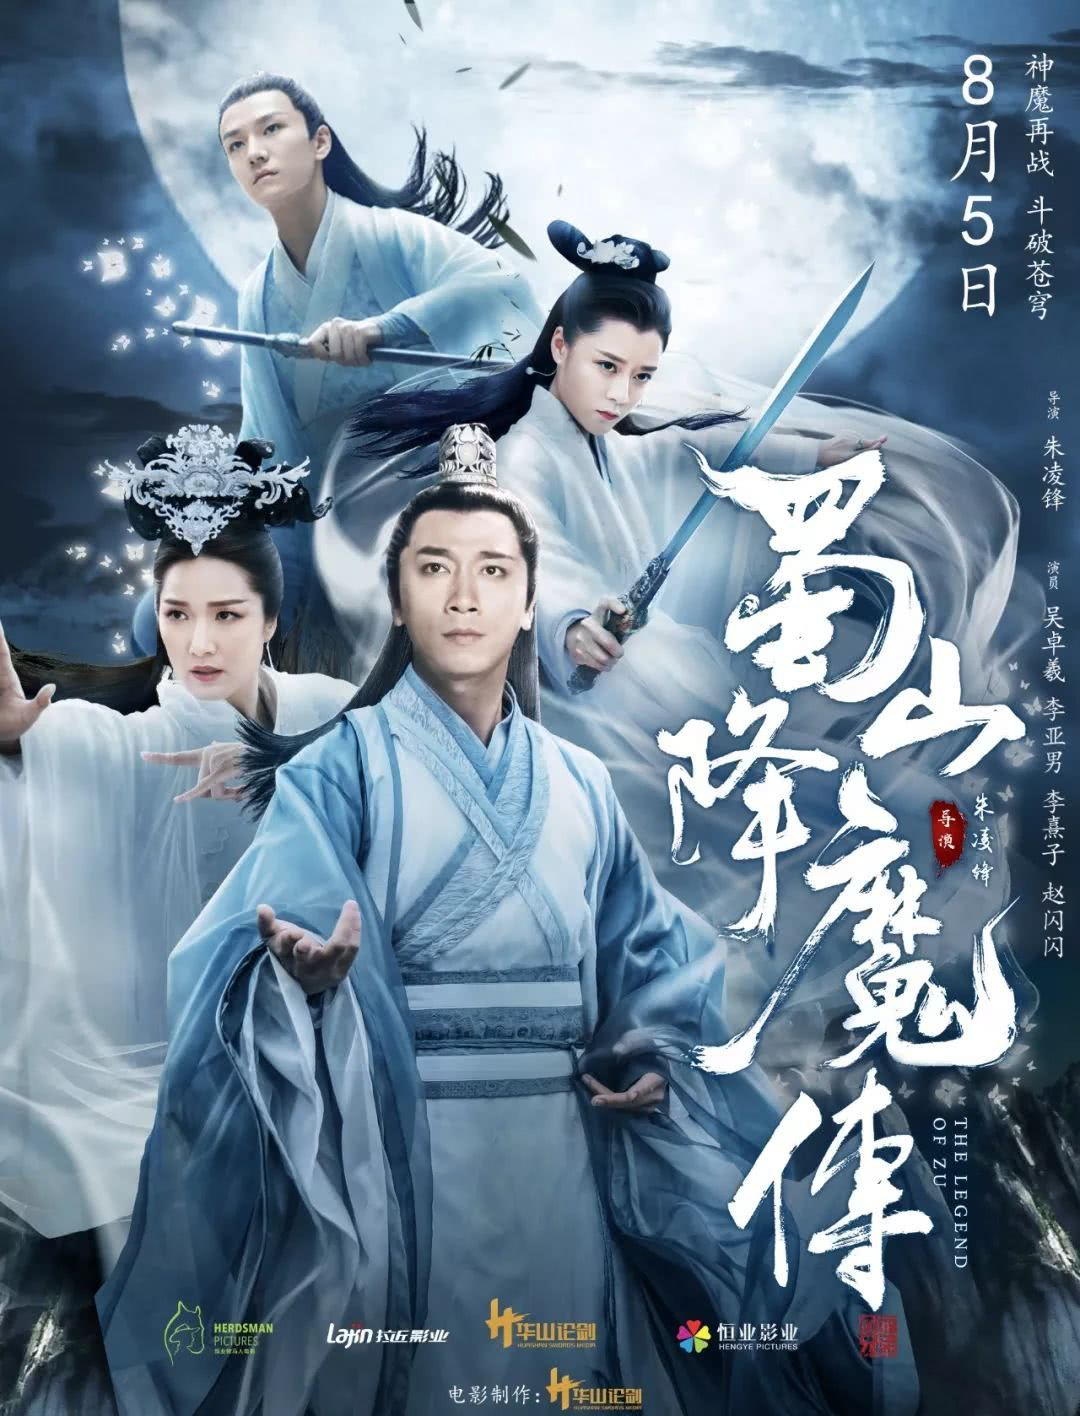 The Legend of Zu - 蜀山降魔传